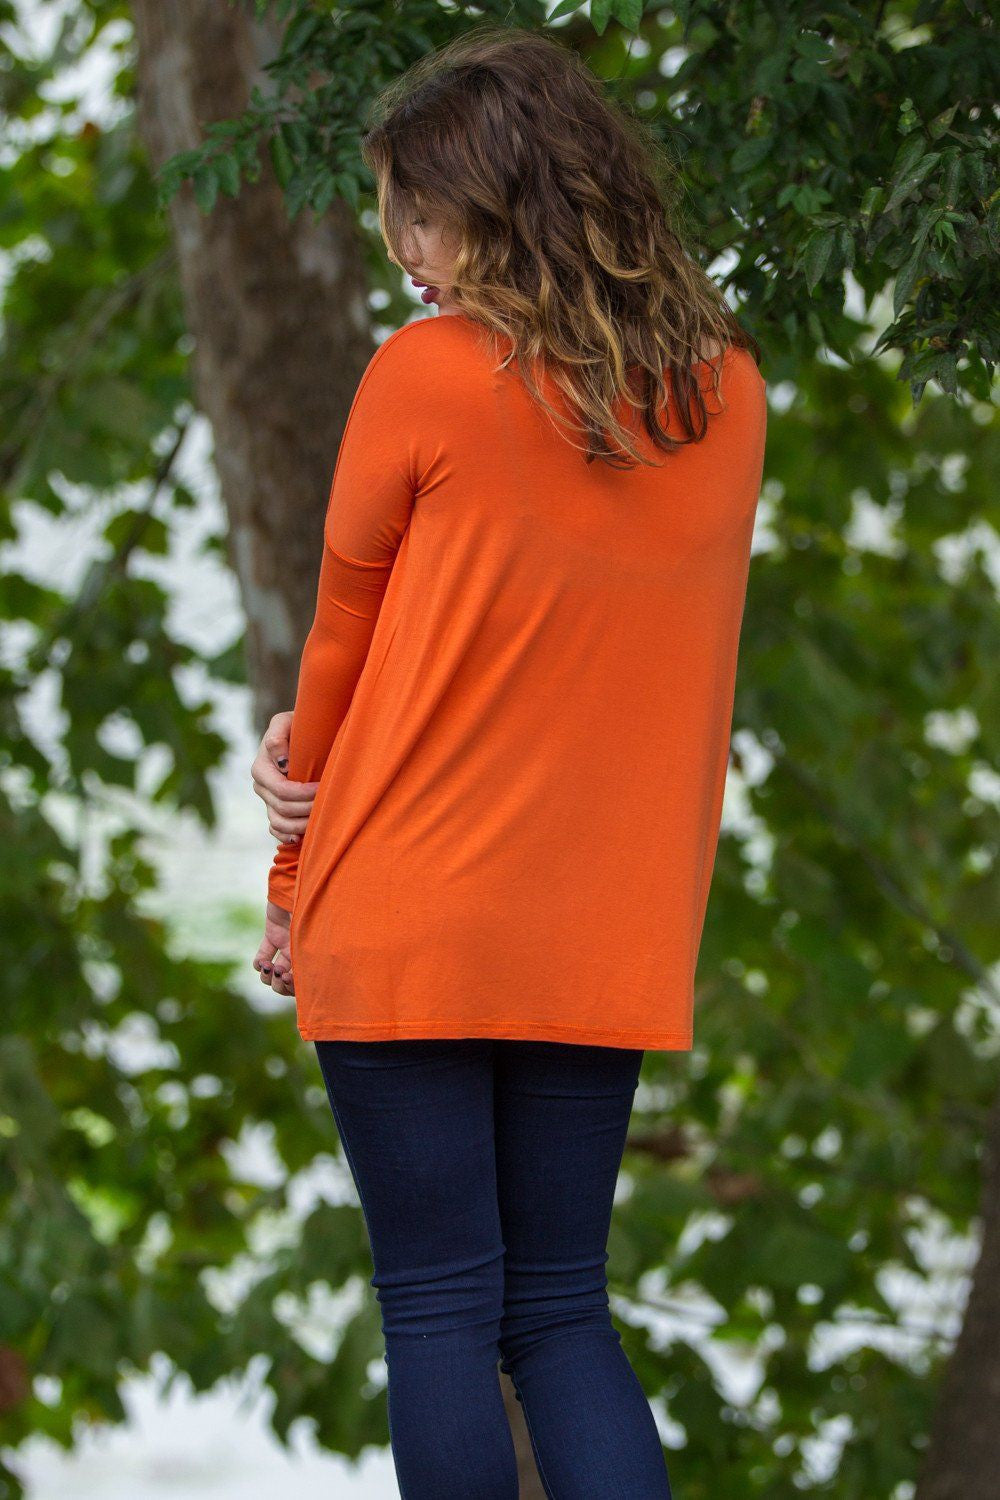 Long Sleeve Piko Top - Orange - Piko Clothing